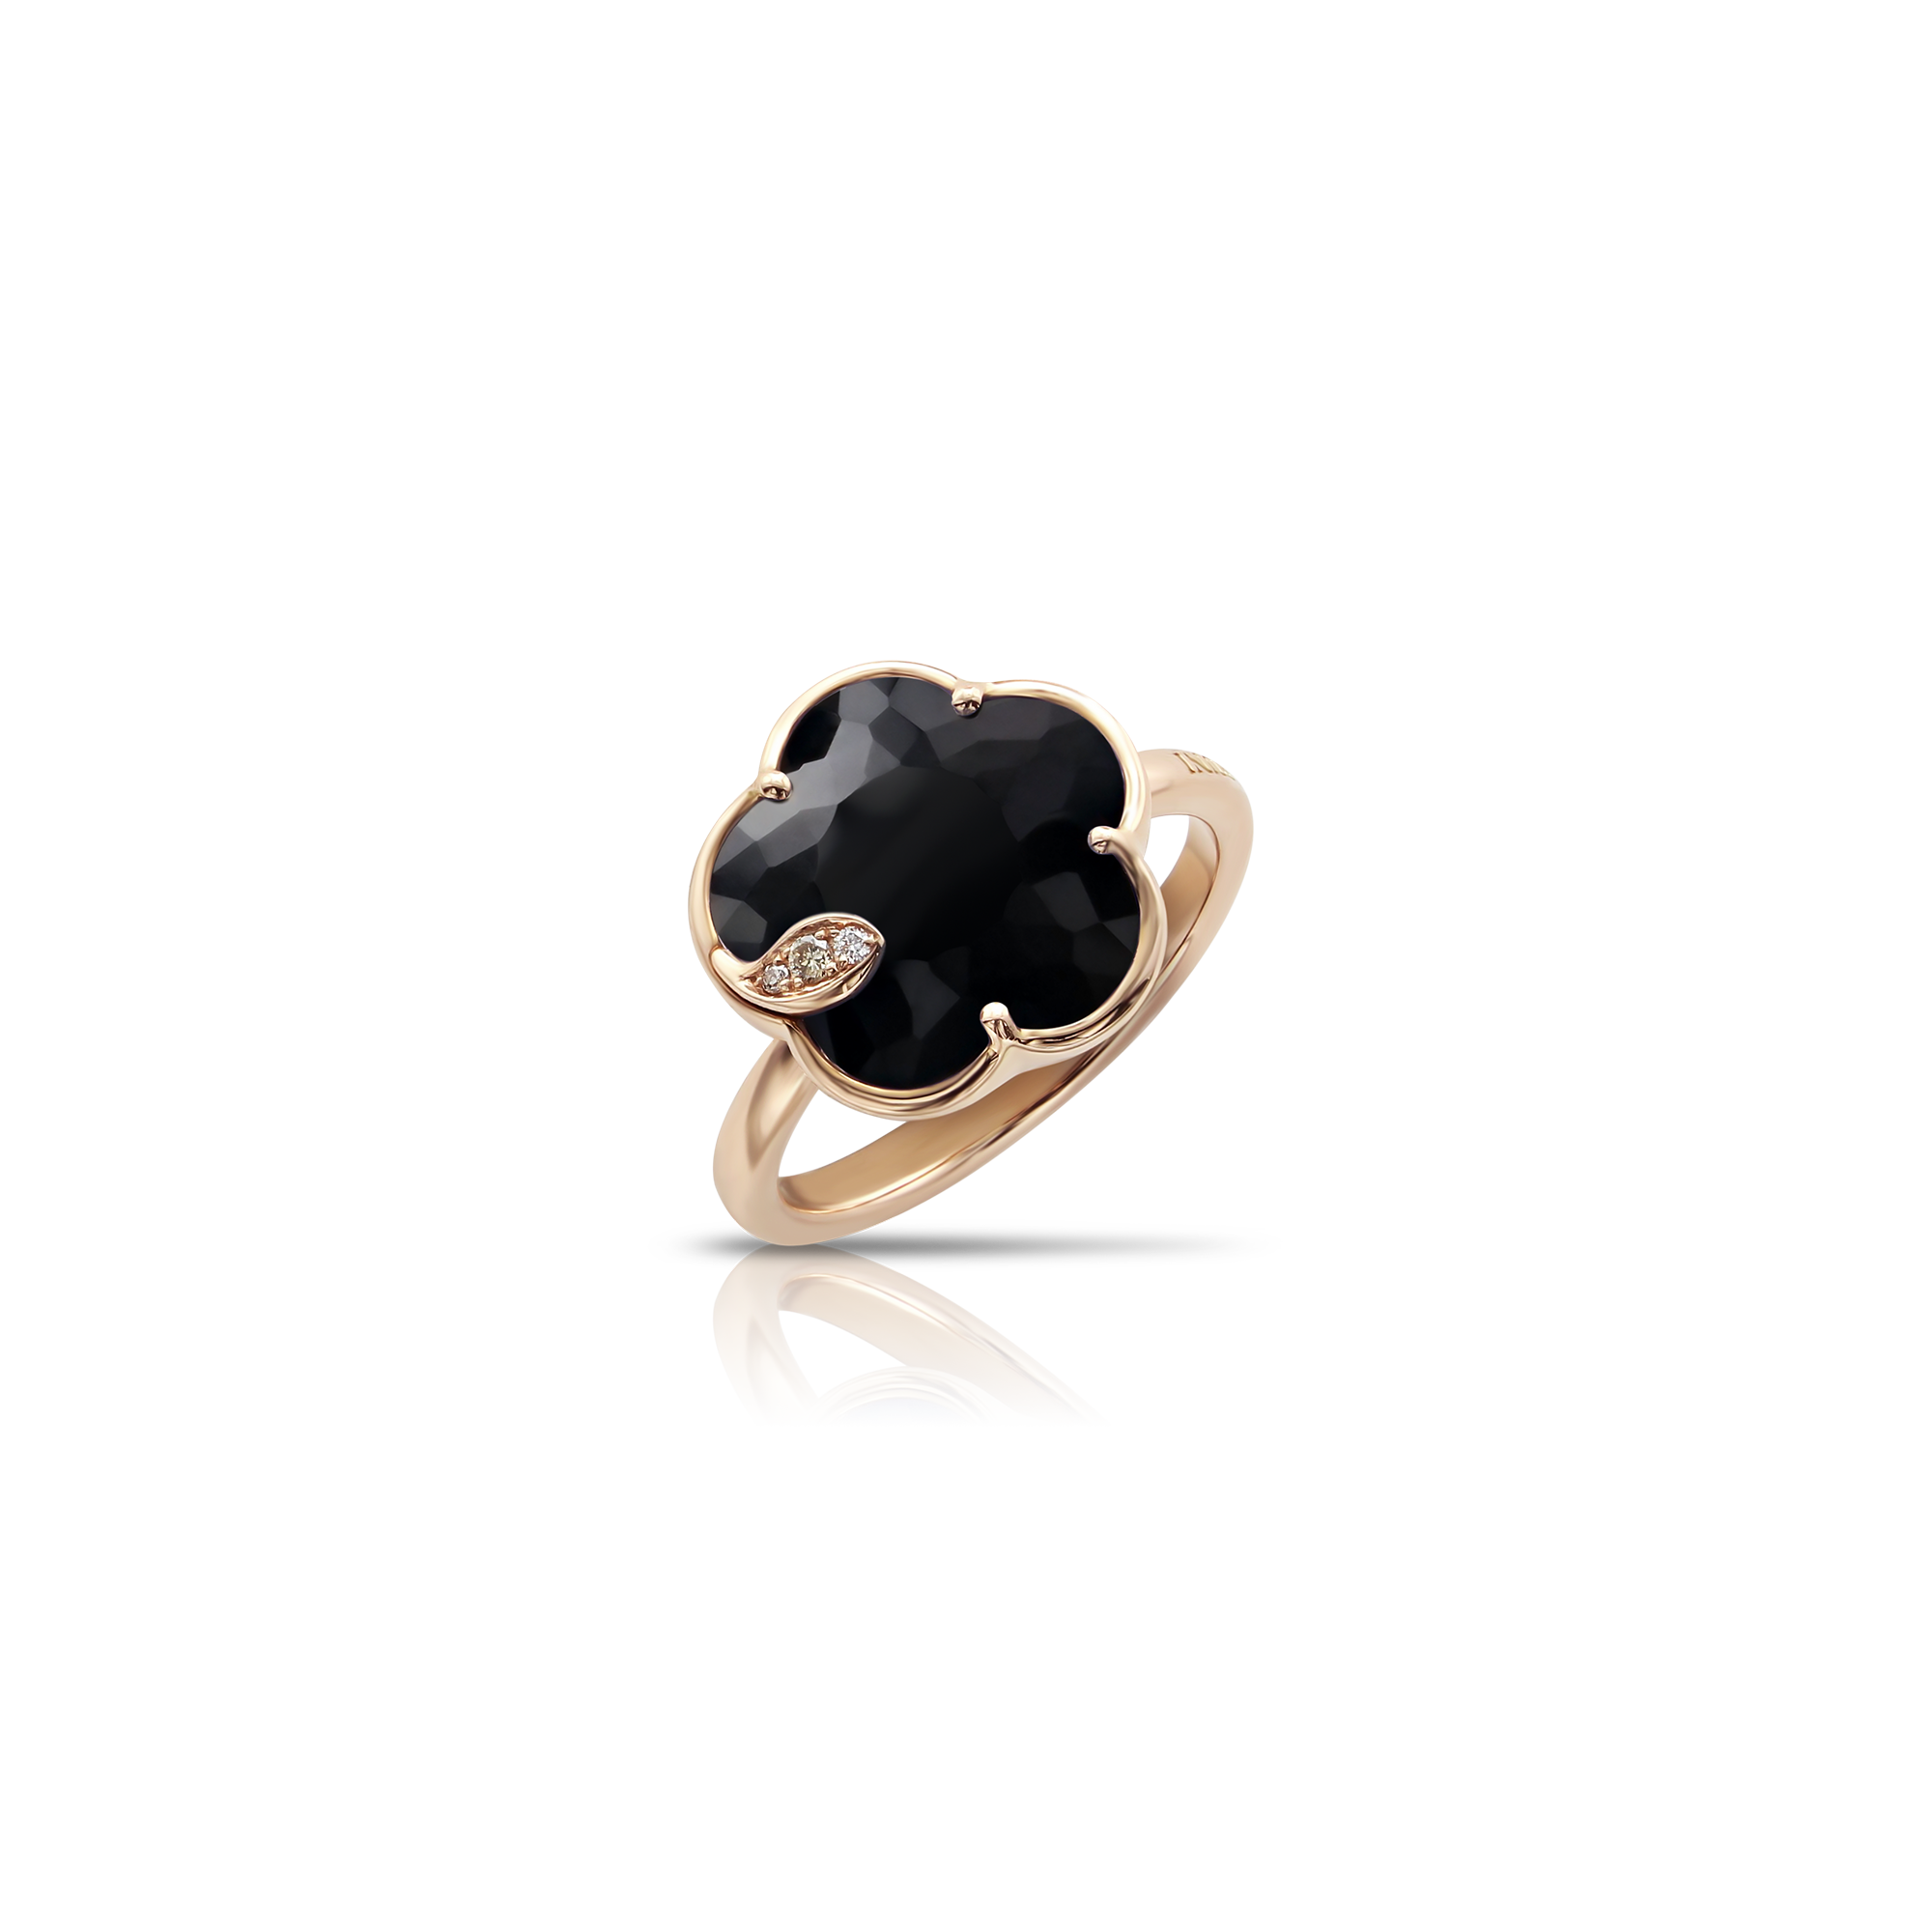 NEW 18k Rose Gold Petit Joli Ring with Onyx, White and Champagne Diamonds